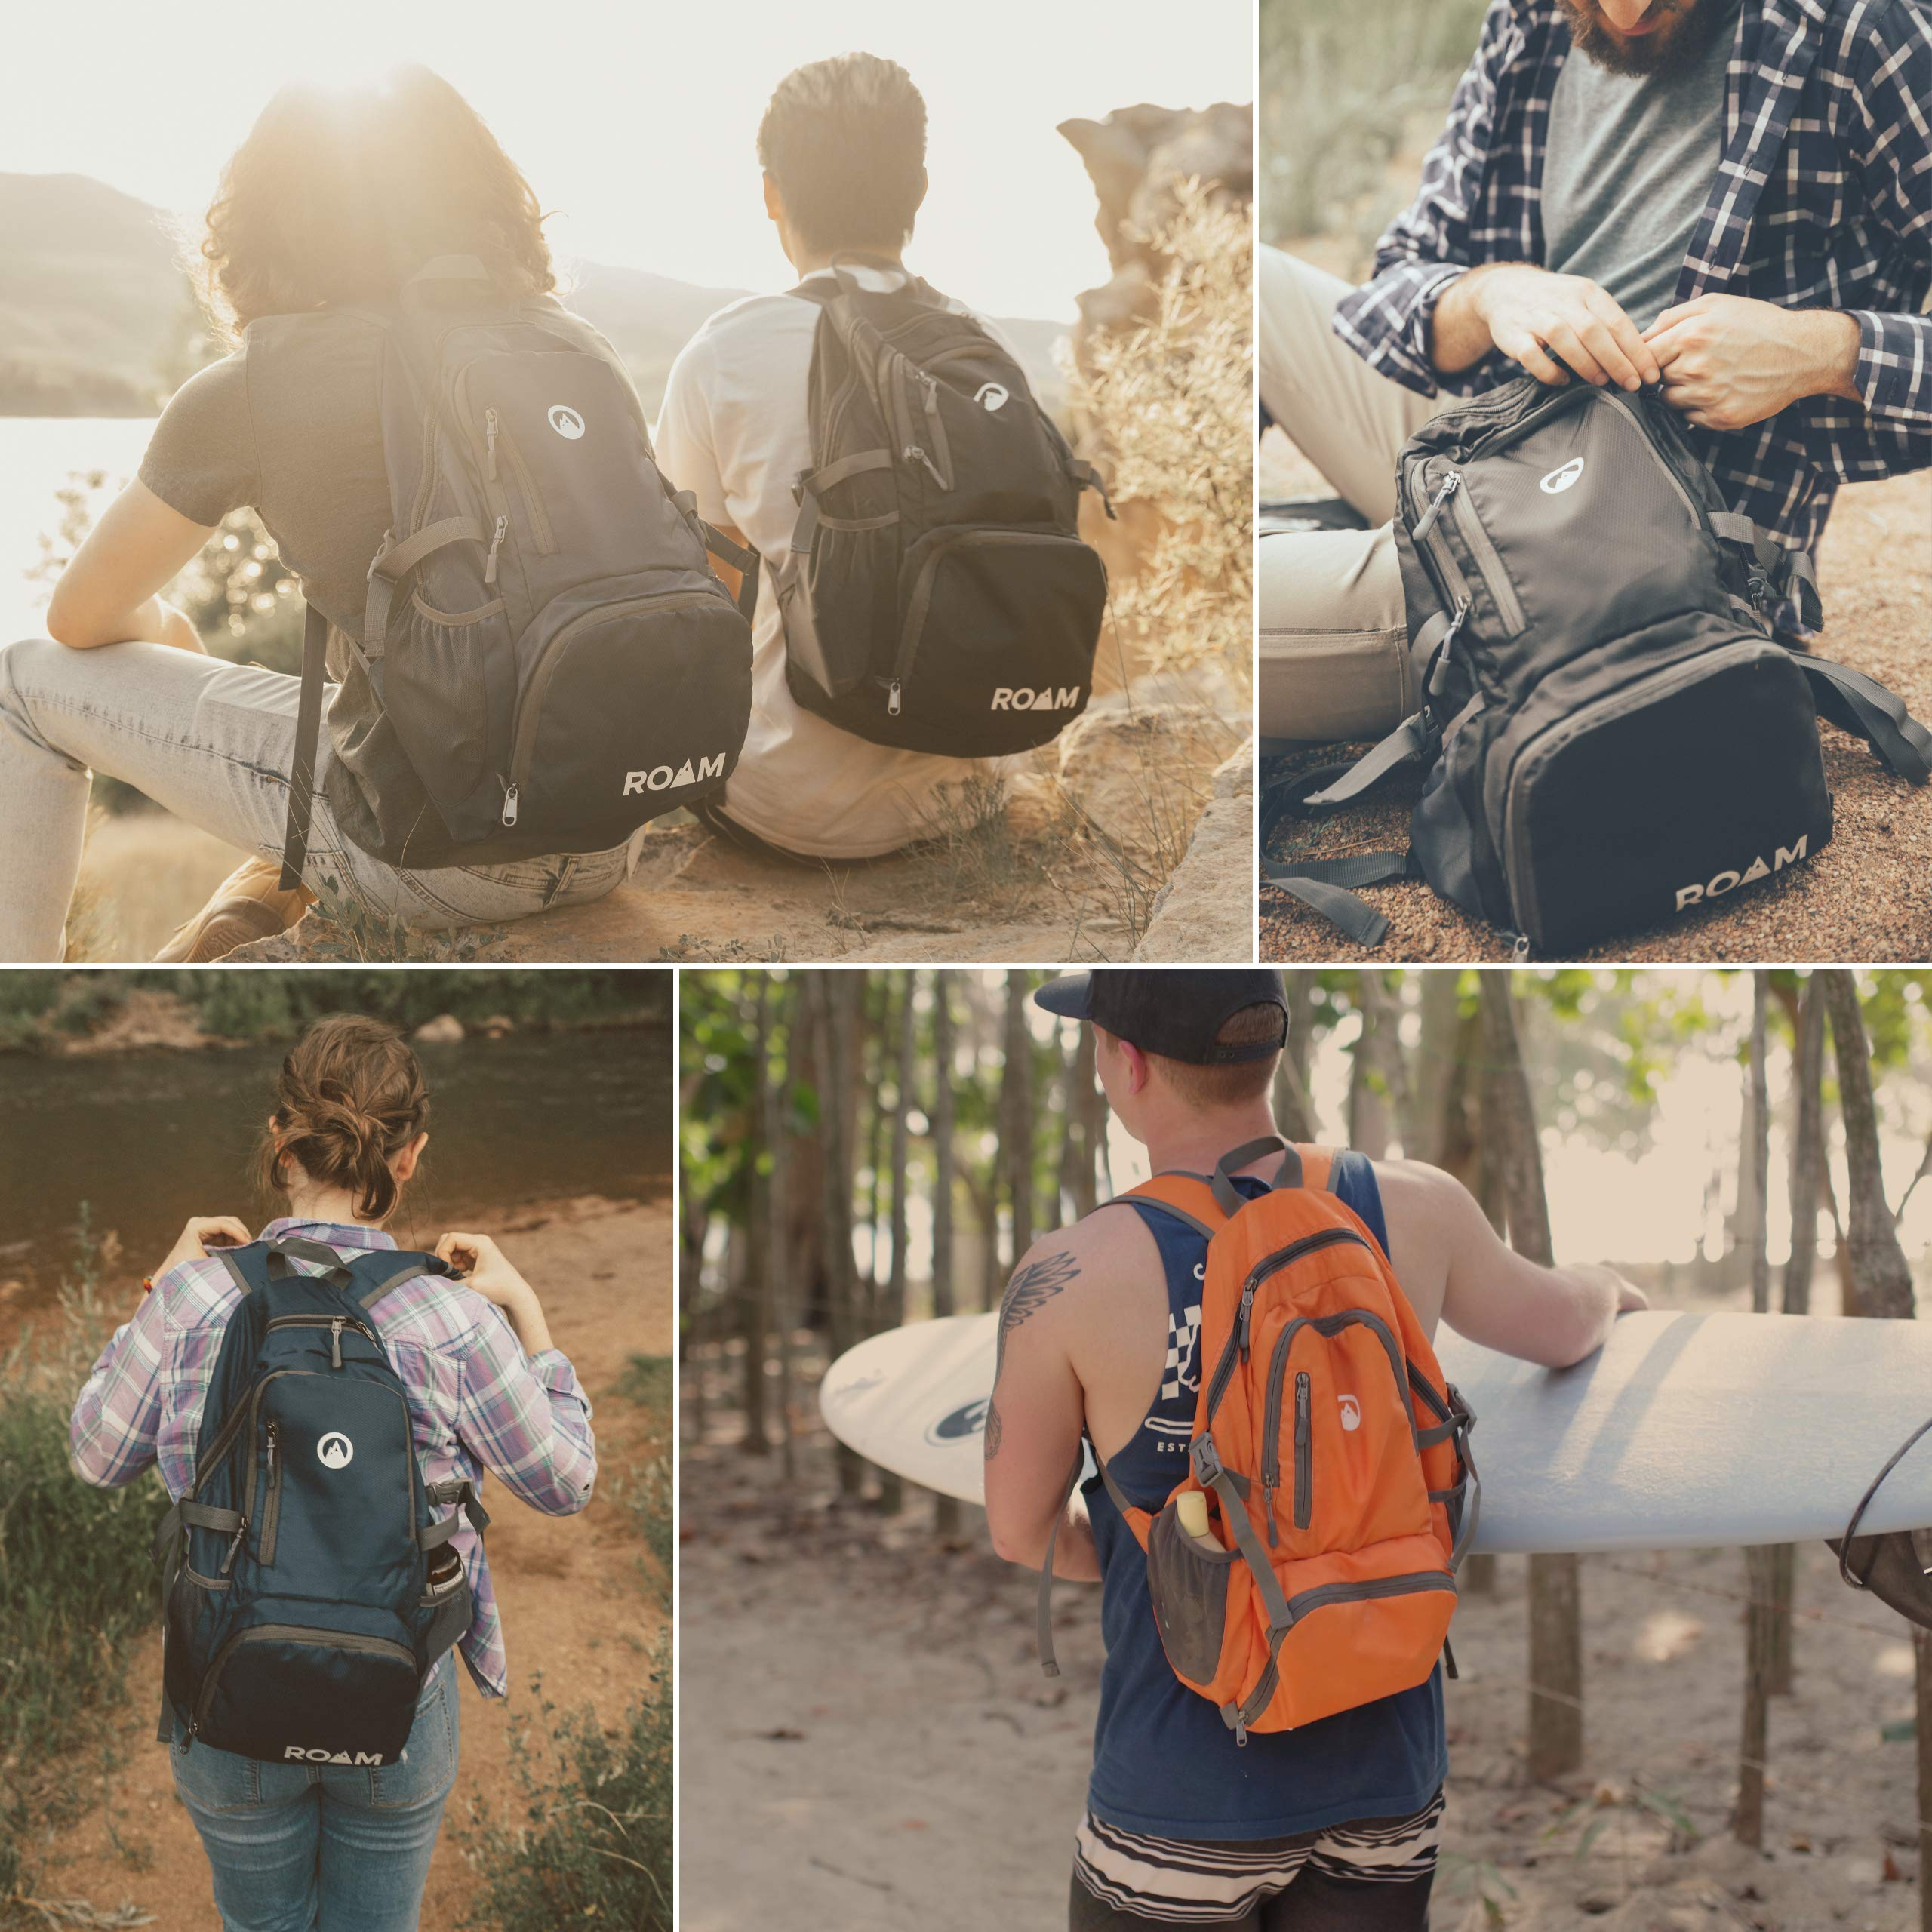 Roam Packable Backpack – Lightweight Foldable Daypack Water-Resistant, 25L, – Durable Tear-Resistant Nylon Weave – Daypack for Travel, Hiking, Backpacking, Camping, Mountaineering, Beach, Outdoors by Roam (Image #7)